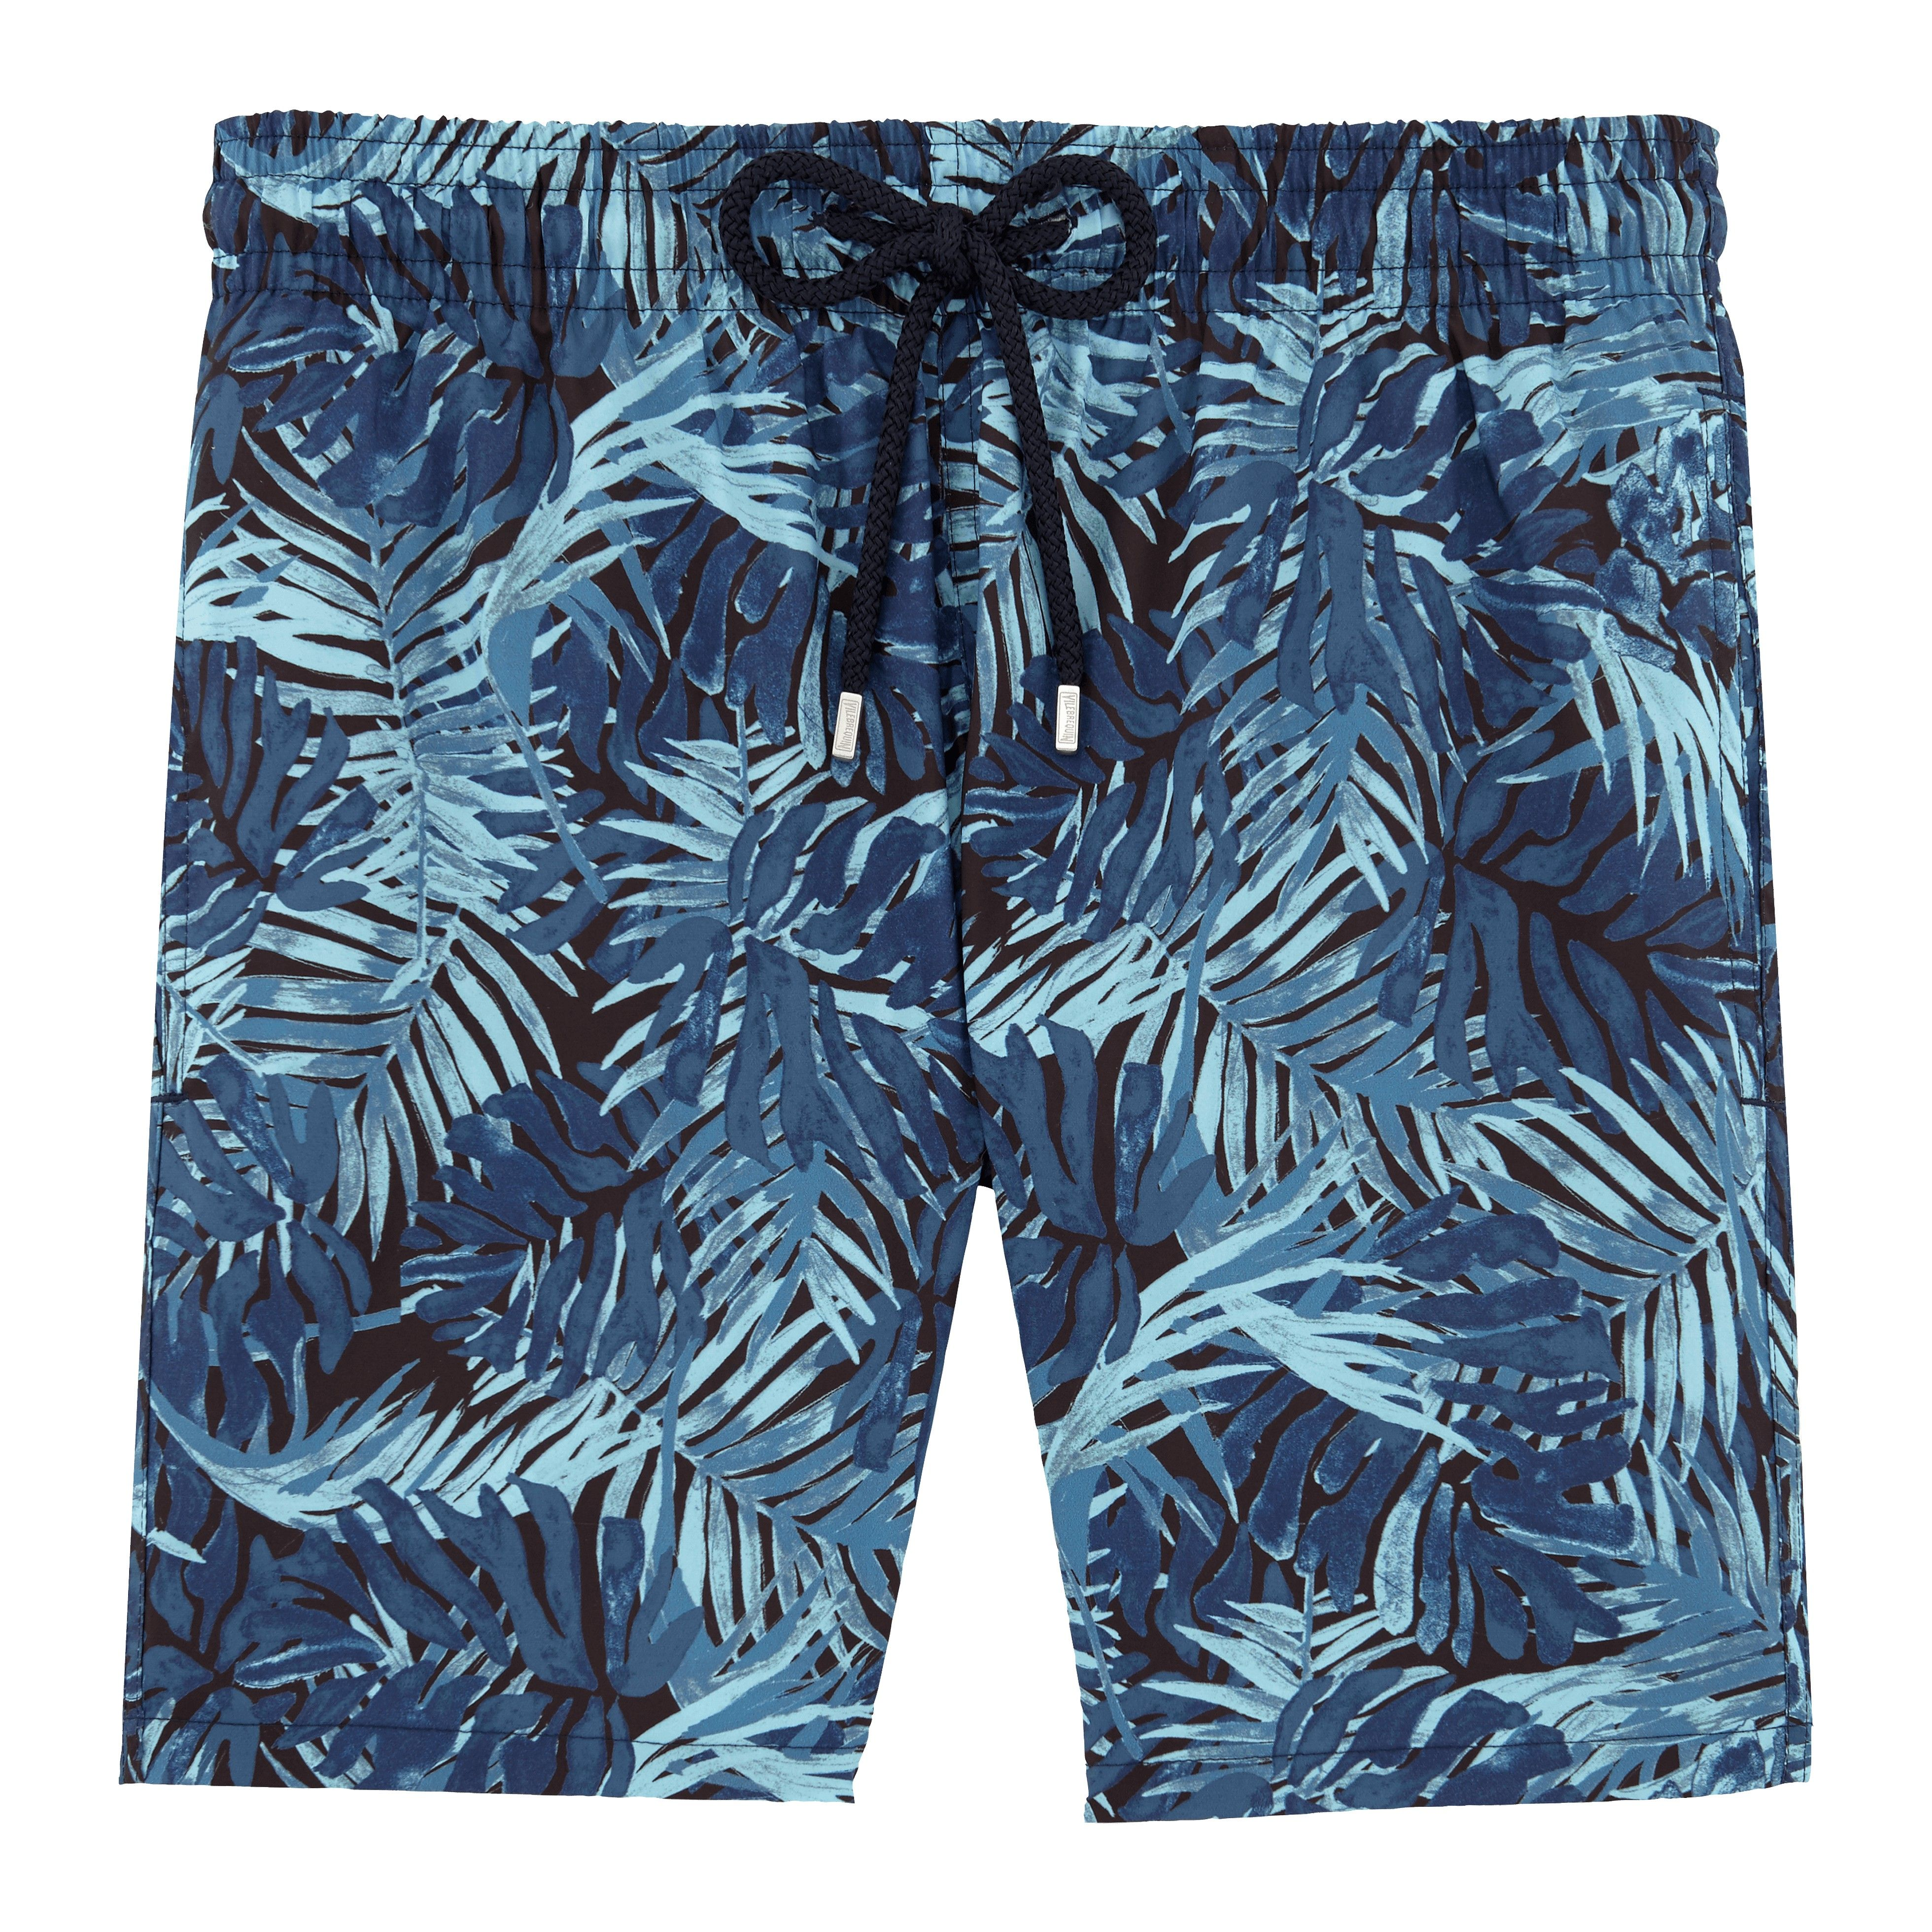 6d09becf6c VILEBREQUIN Madrague Lightweight Packable Swim Shorts, mahina - NAVY. # vilebrequin #cloth #